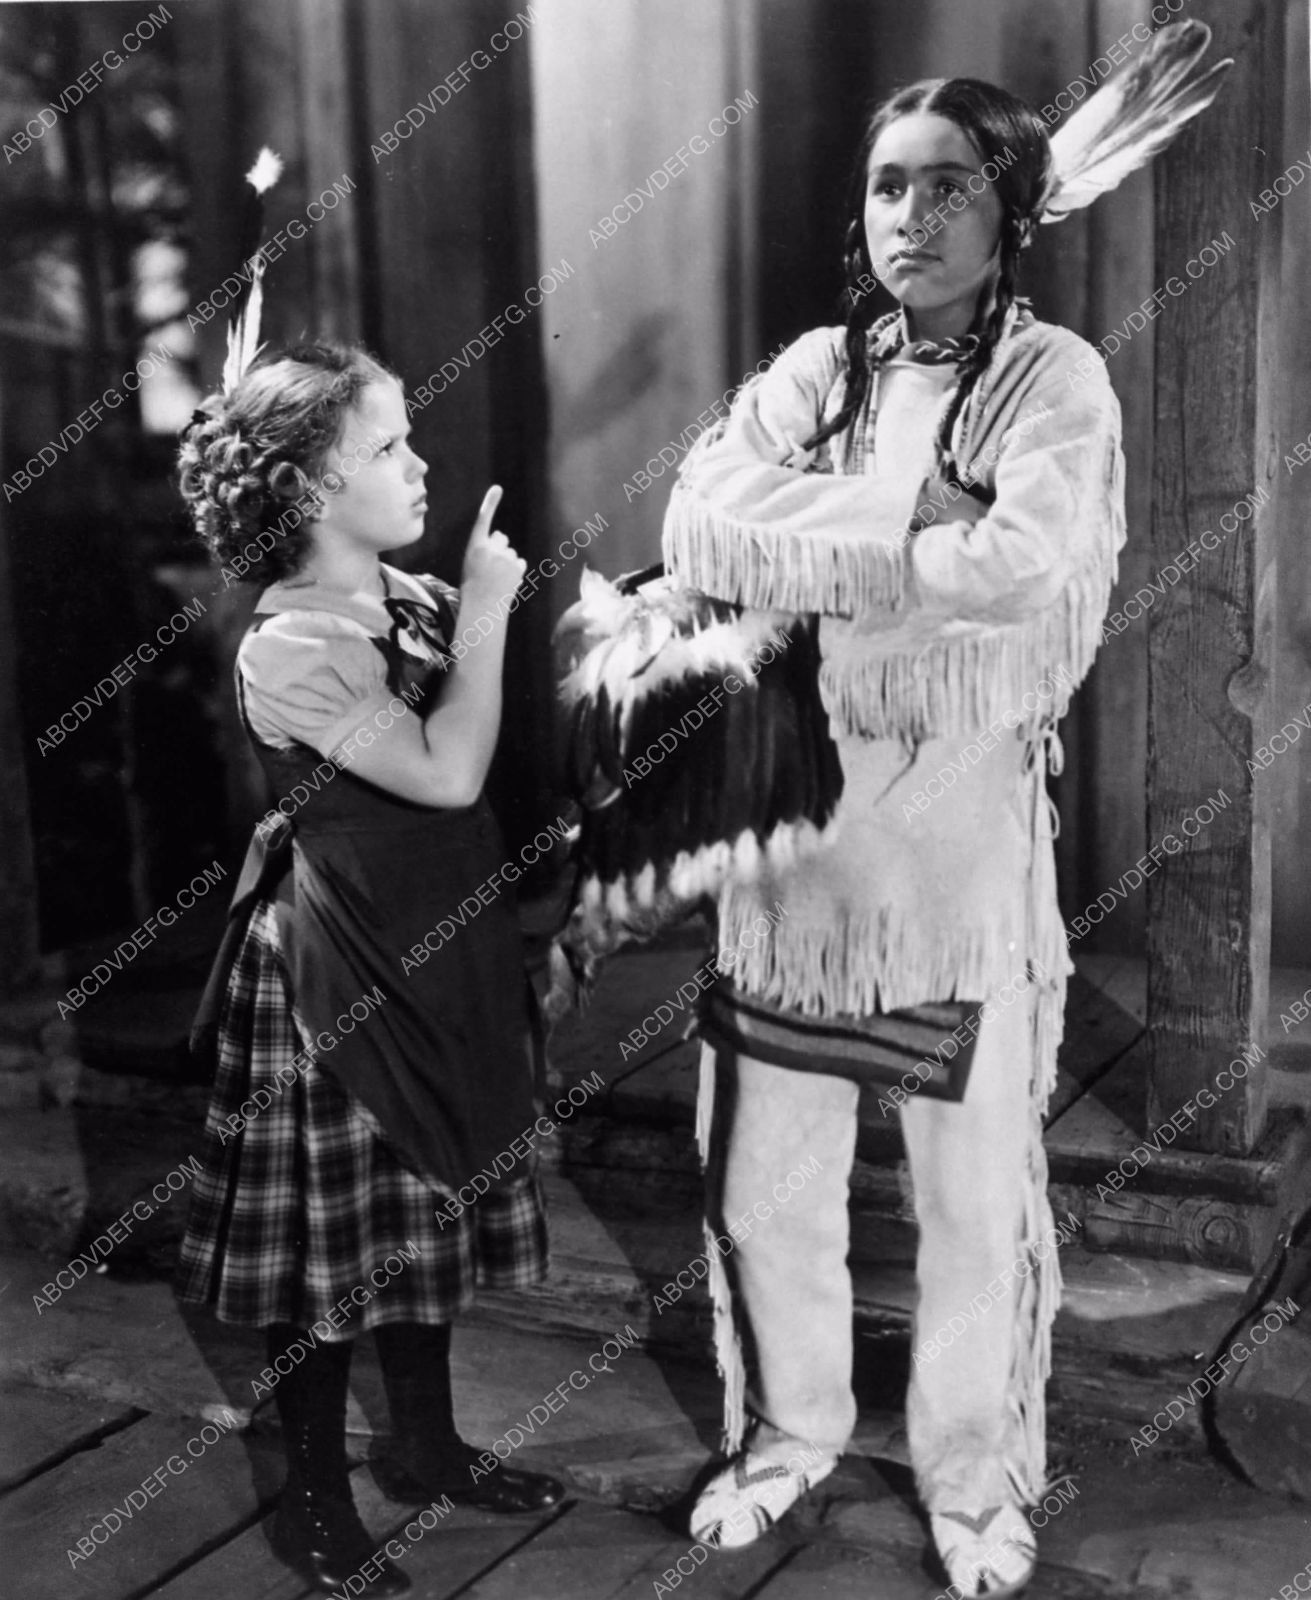 Shirley temple and young indian boy susannah of the mounties